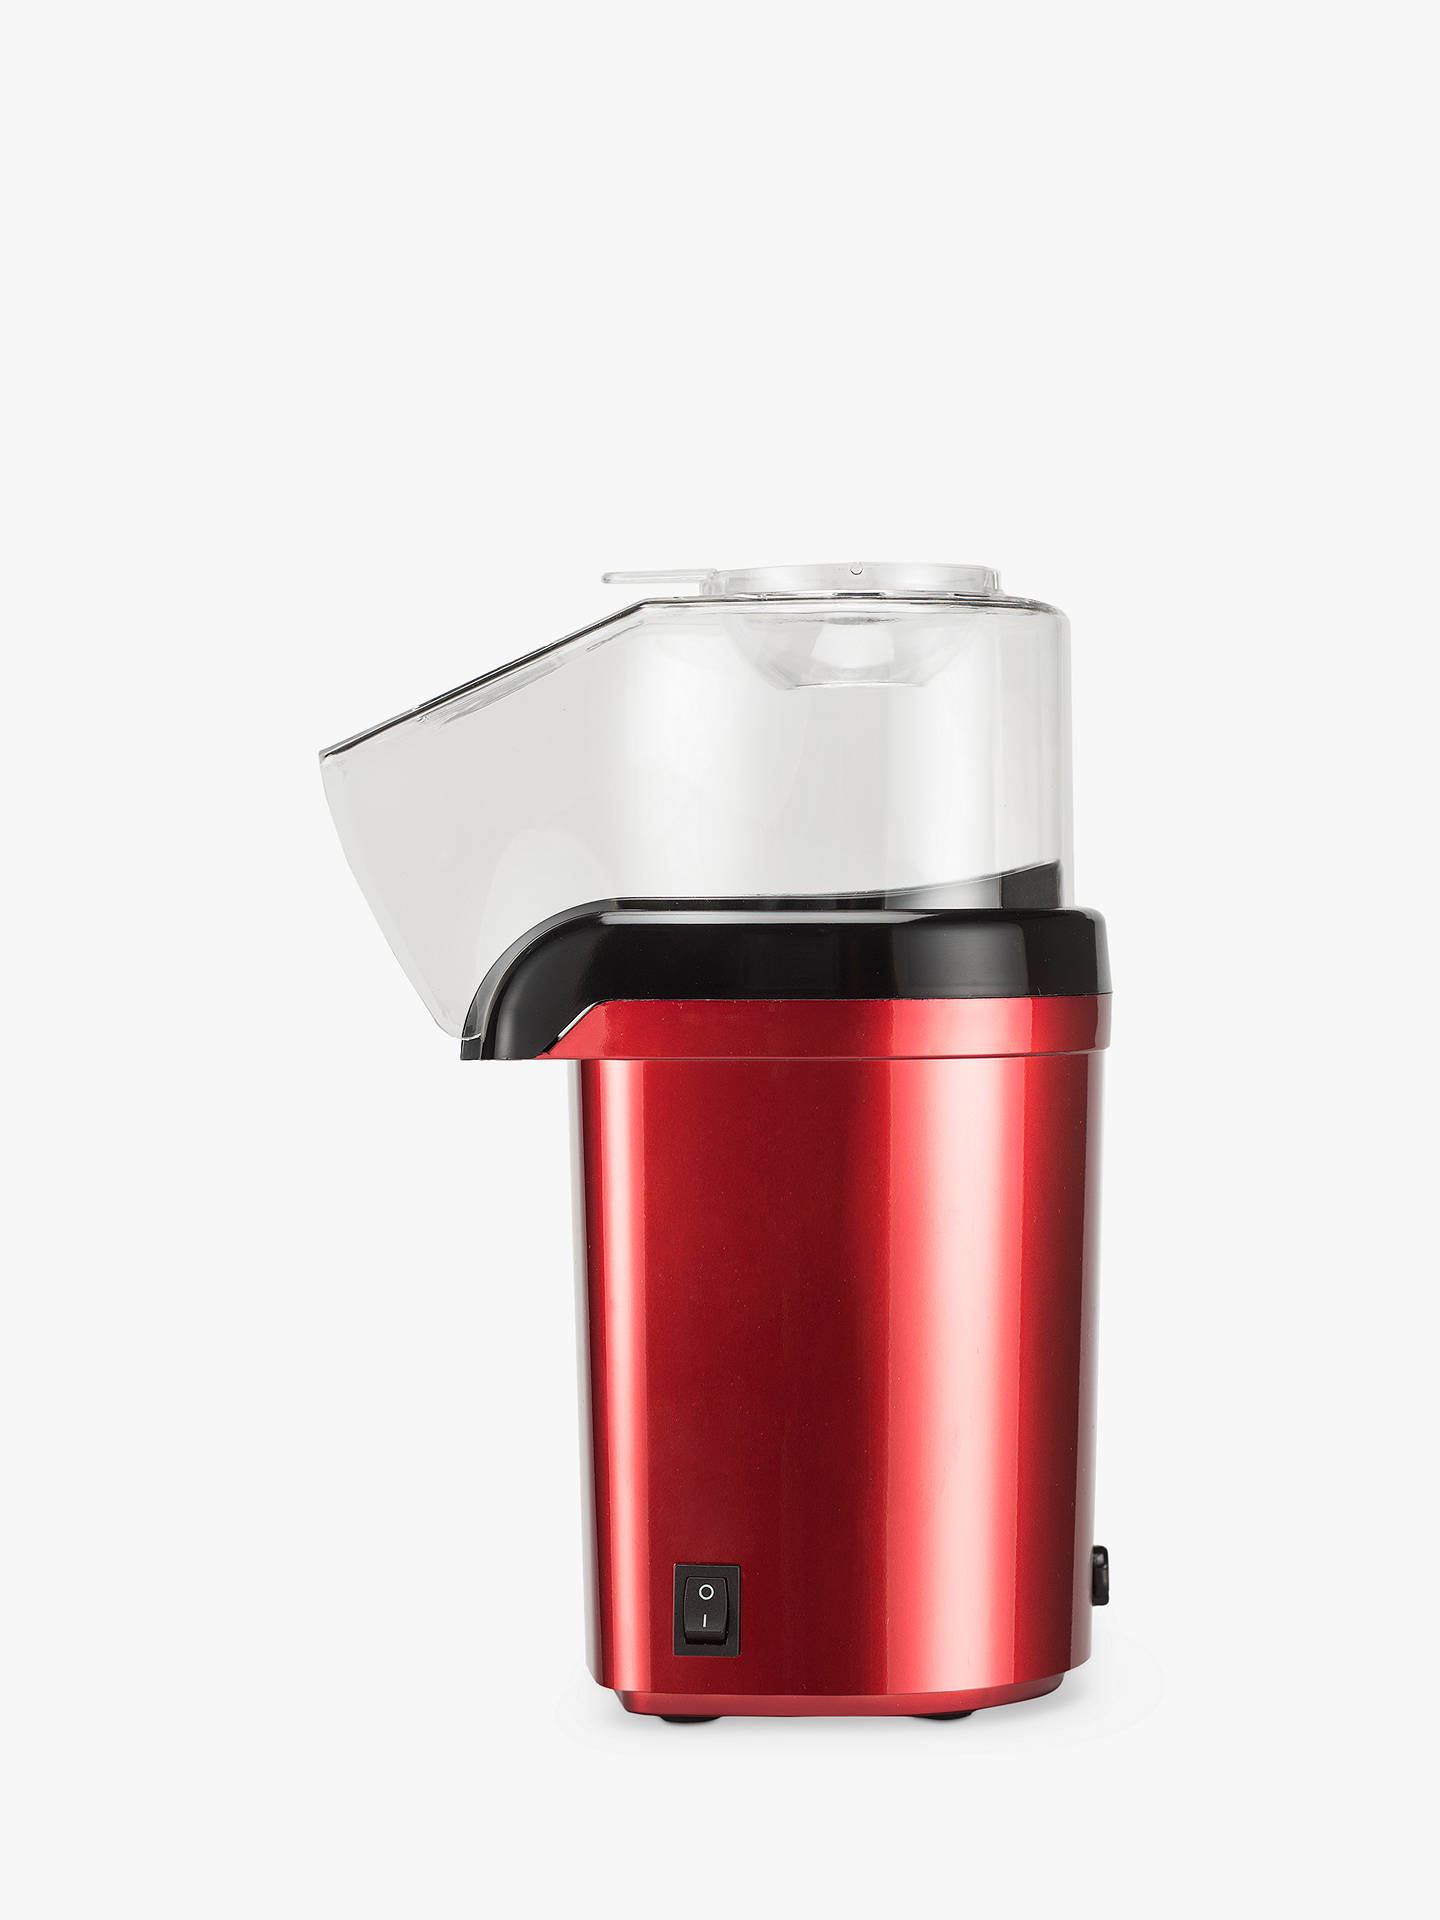 BuyGourmet Gadgetry Retro Popcorn Maker Online at johnlewis.com